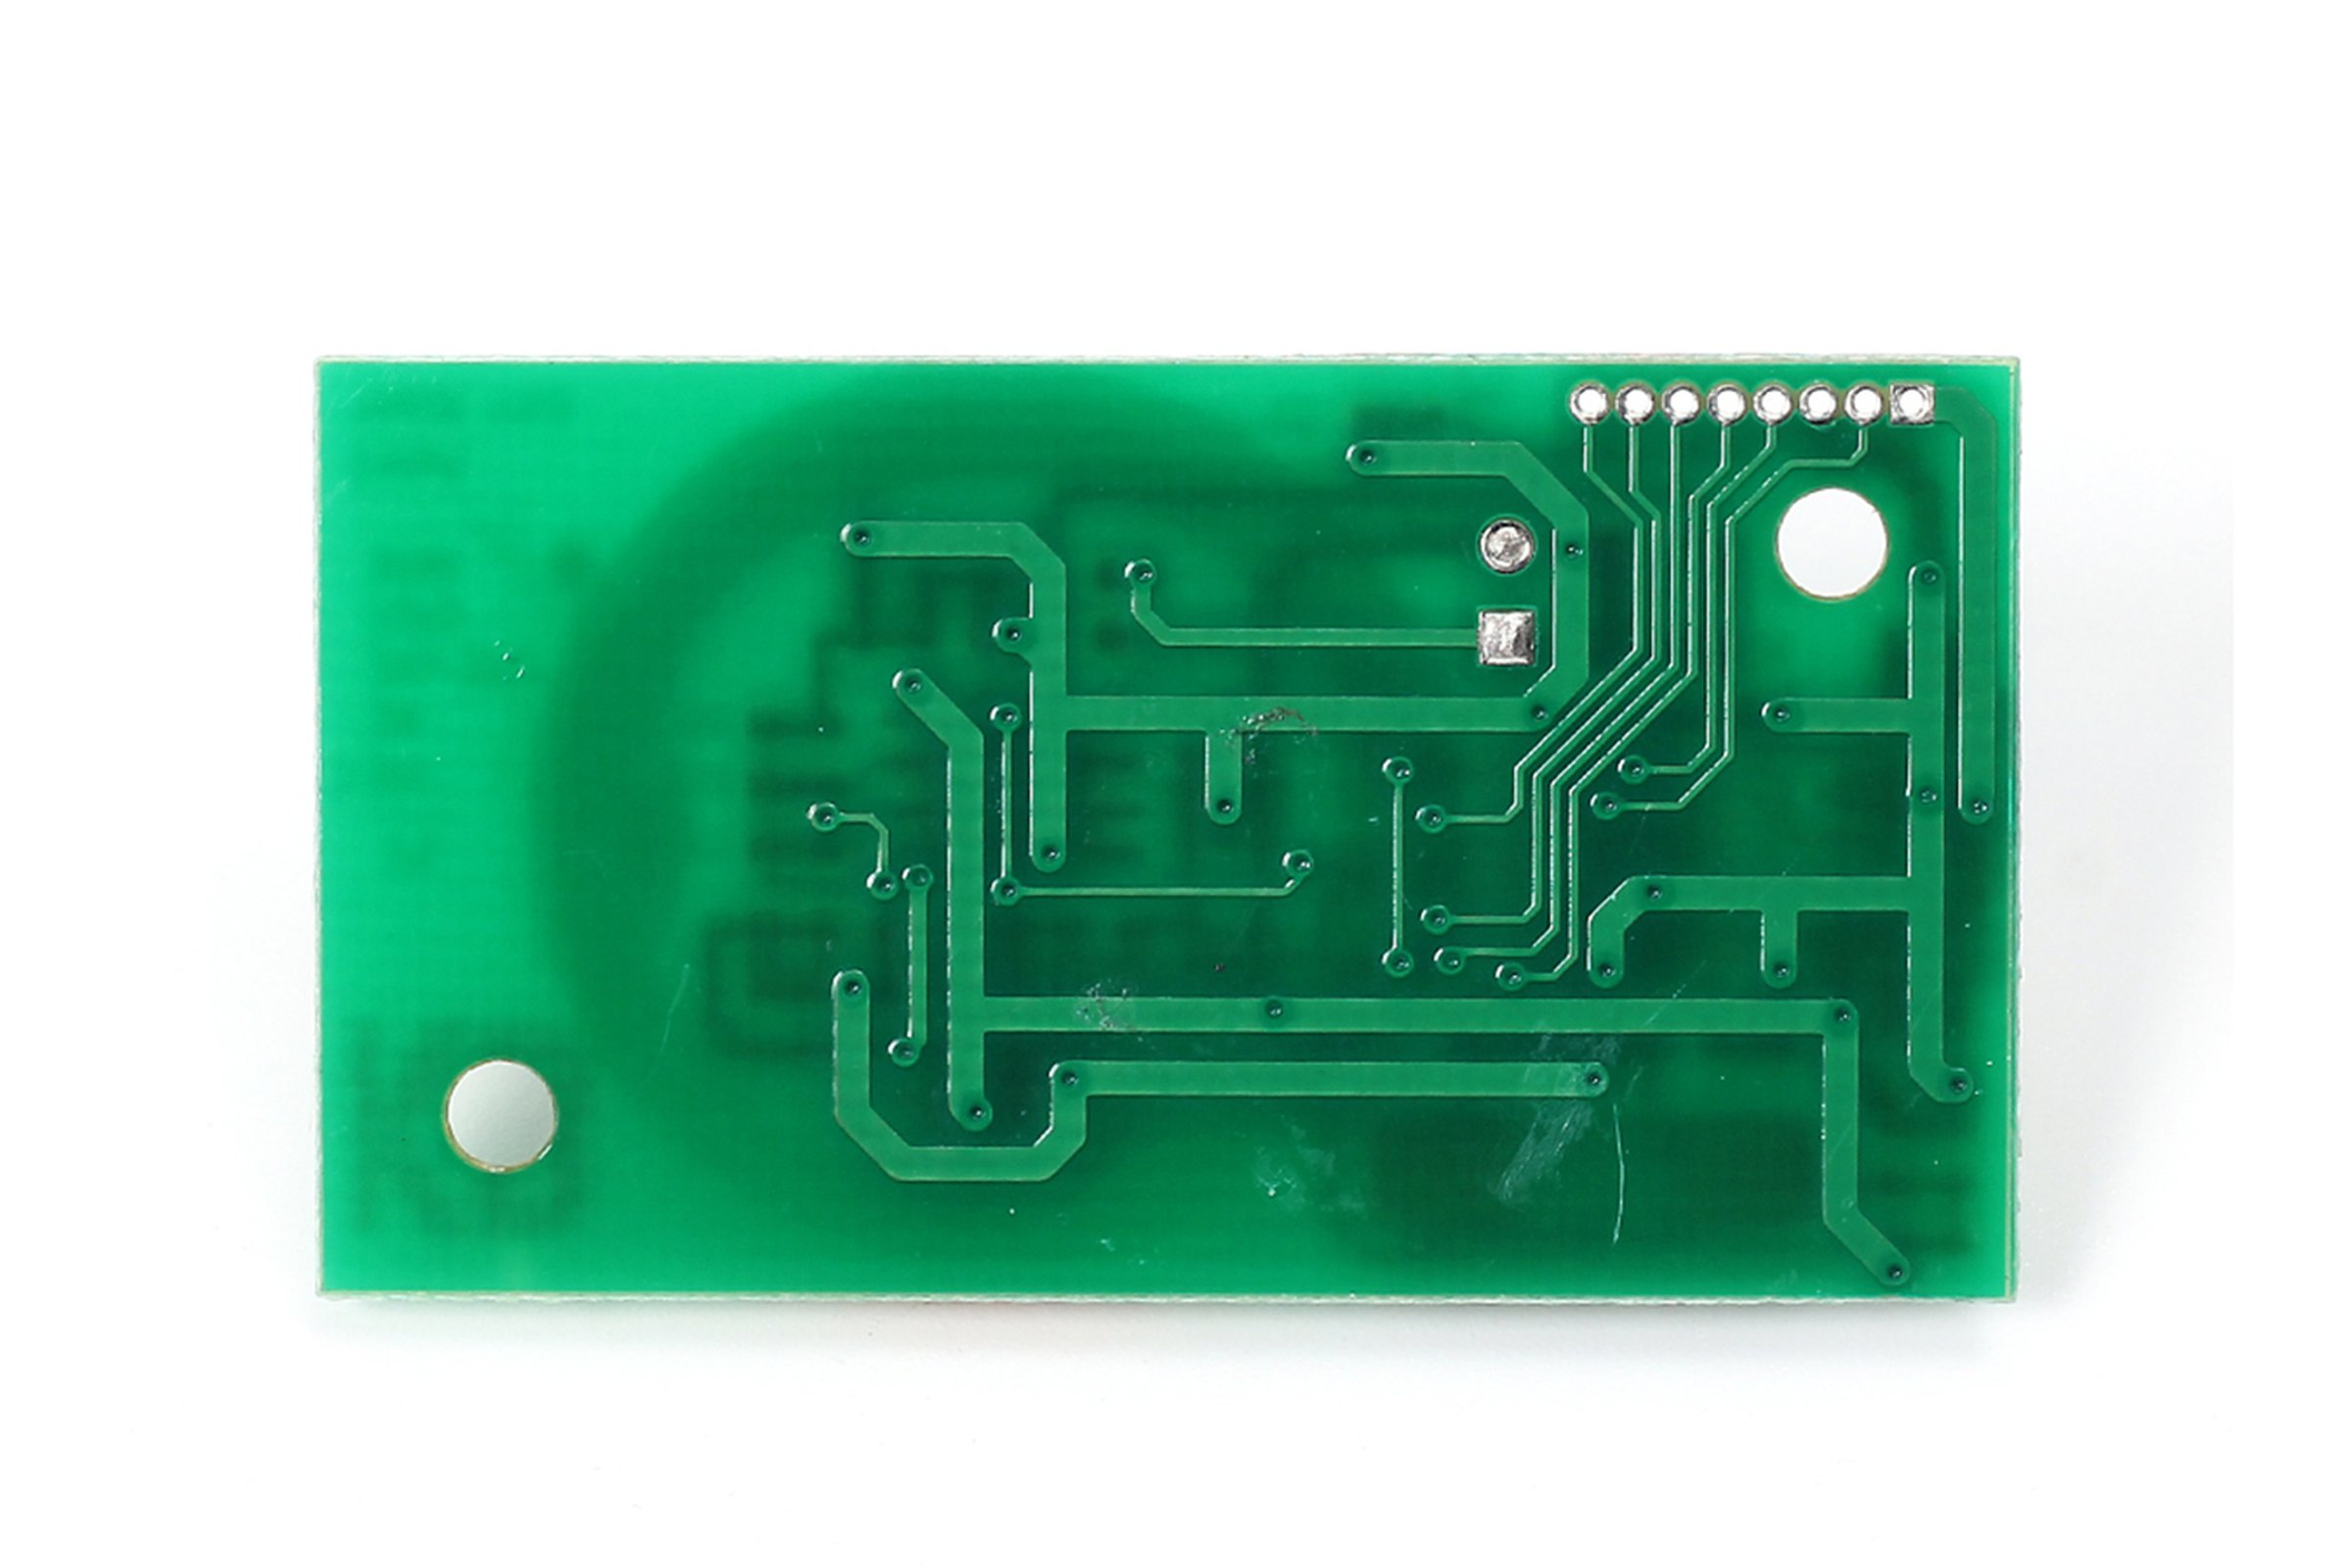 Rfid Reader Wireless Module For Ic Card12447 From Icstation On Tindie N5ese Teensey Noise Generator Schematic 5